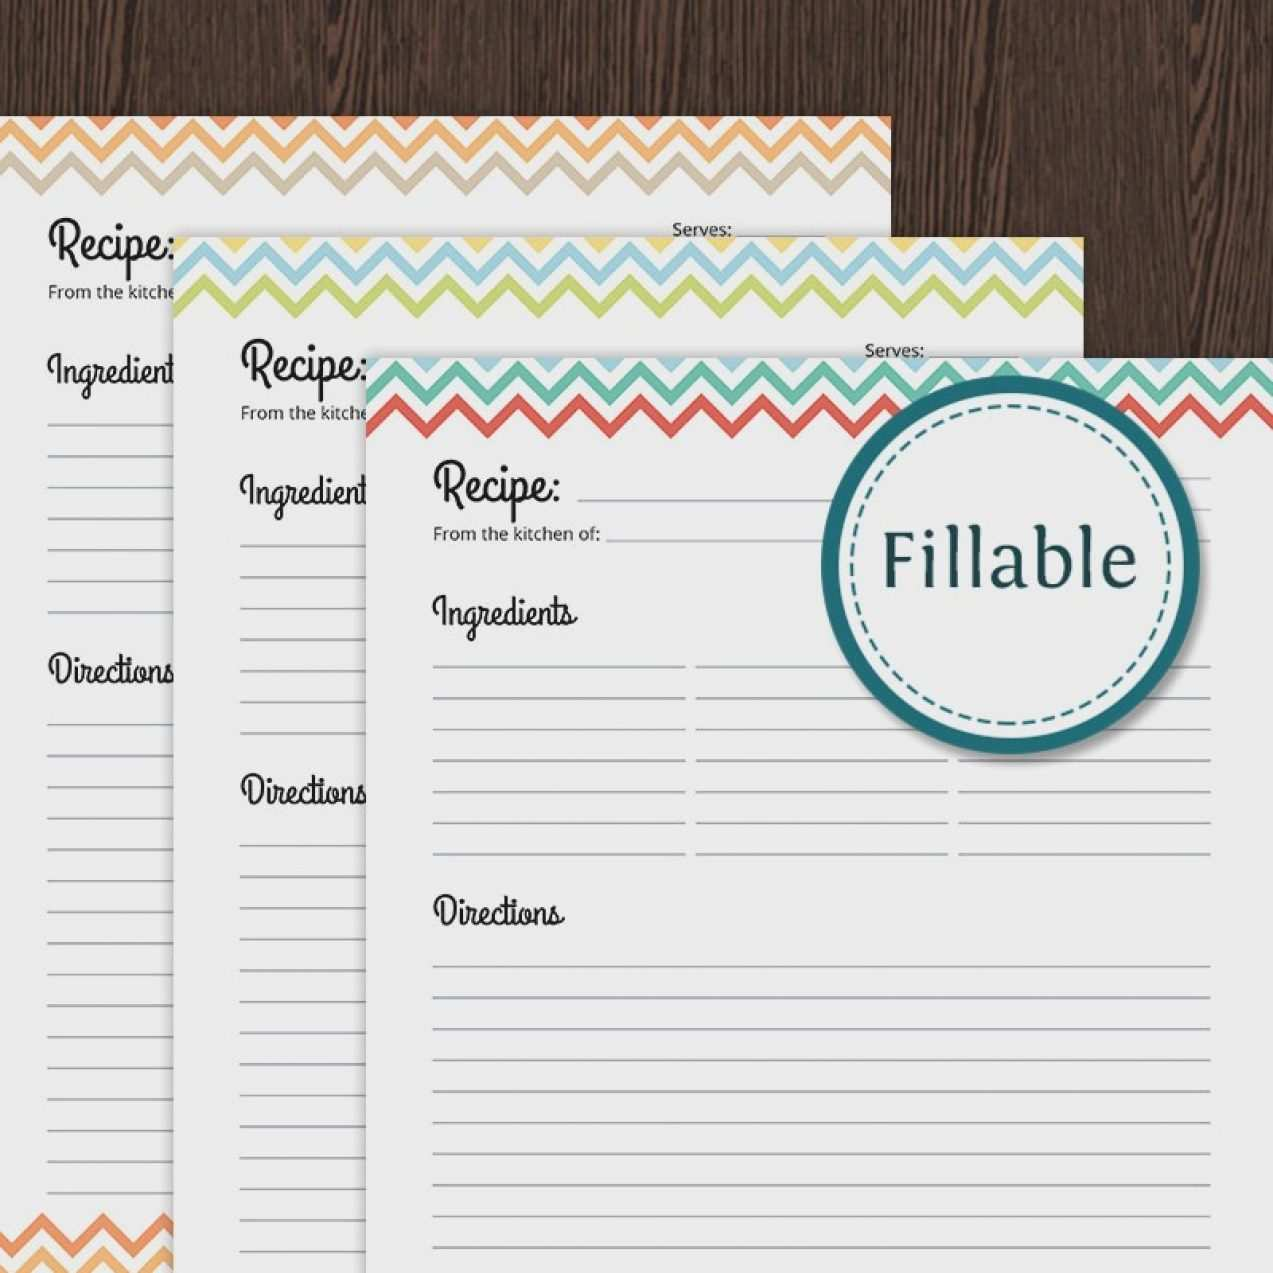 24 Blank Fillable Recipe Card Template For Word in Photoshop by With Full Page Recipe Template For Word